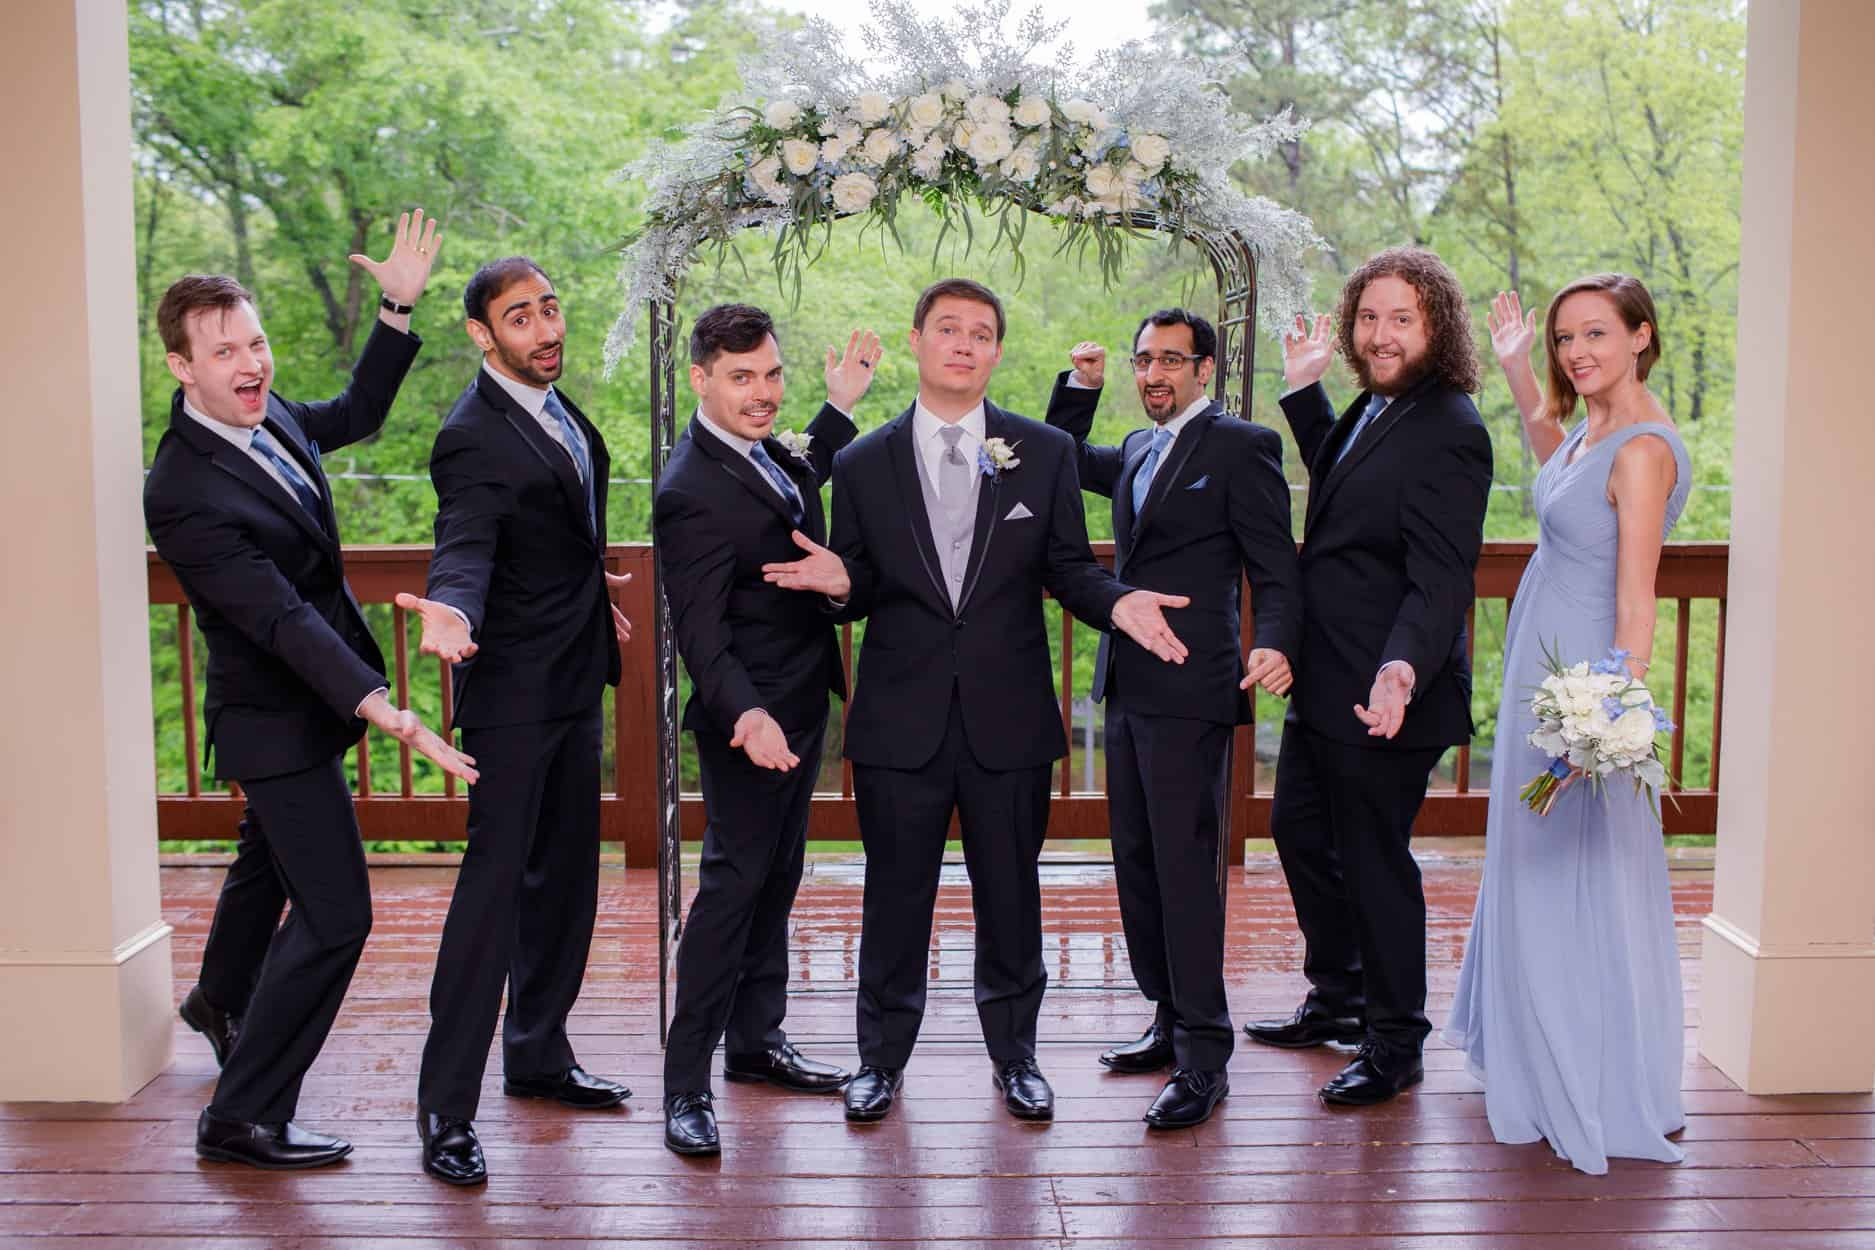 Groom with groomsmen and groomsmaid on deck at ceremony altar with large floral arrangement in ivory, gray, blue